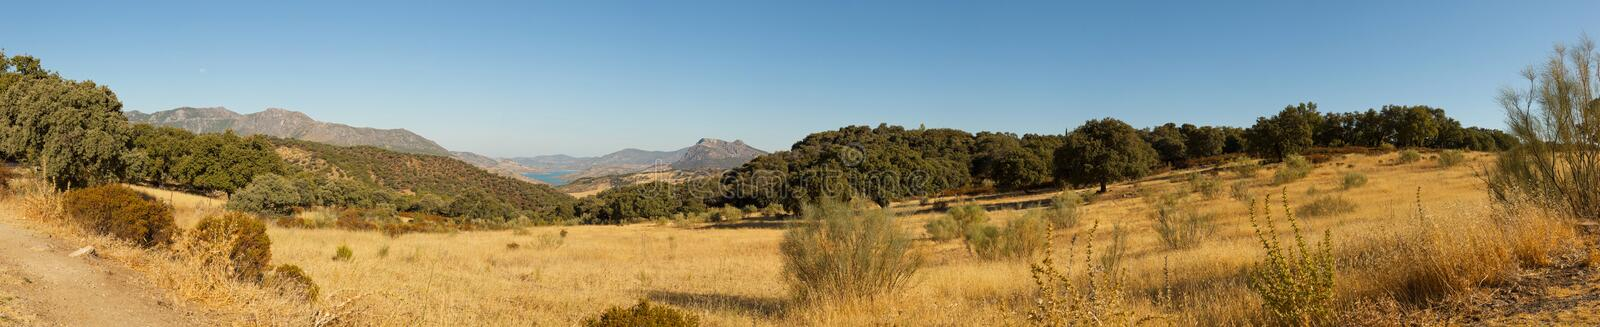 Panoramic landscape photo of Sierra de Grazalema. stock images